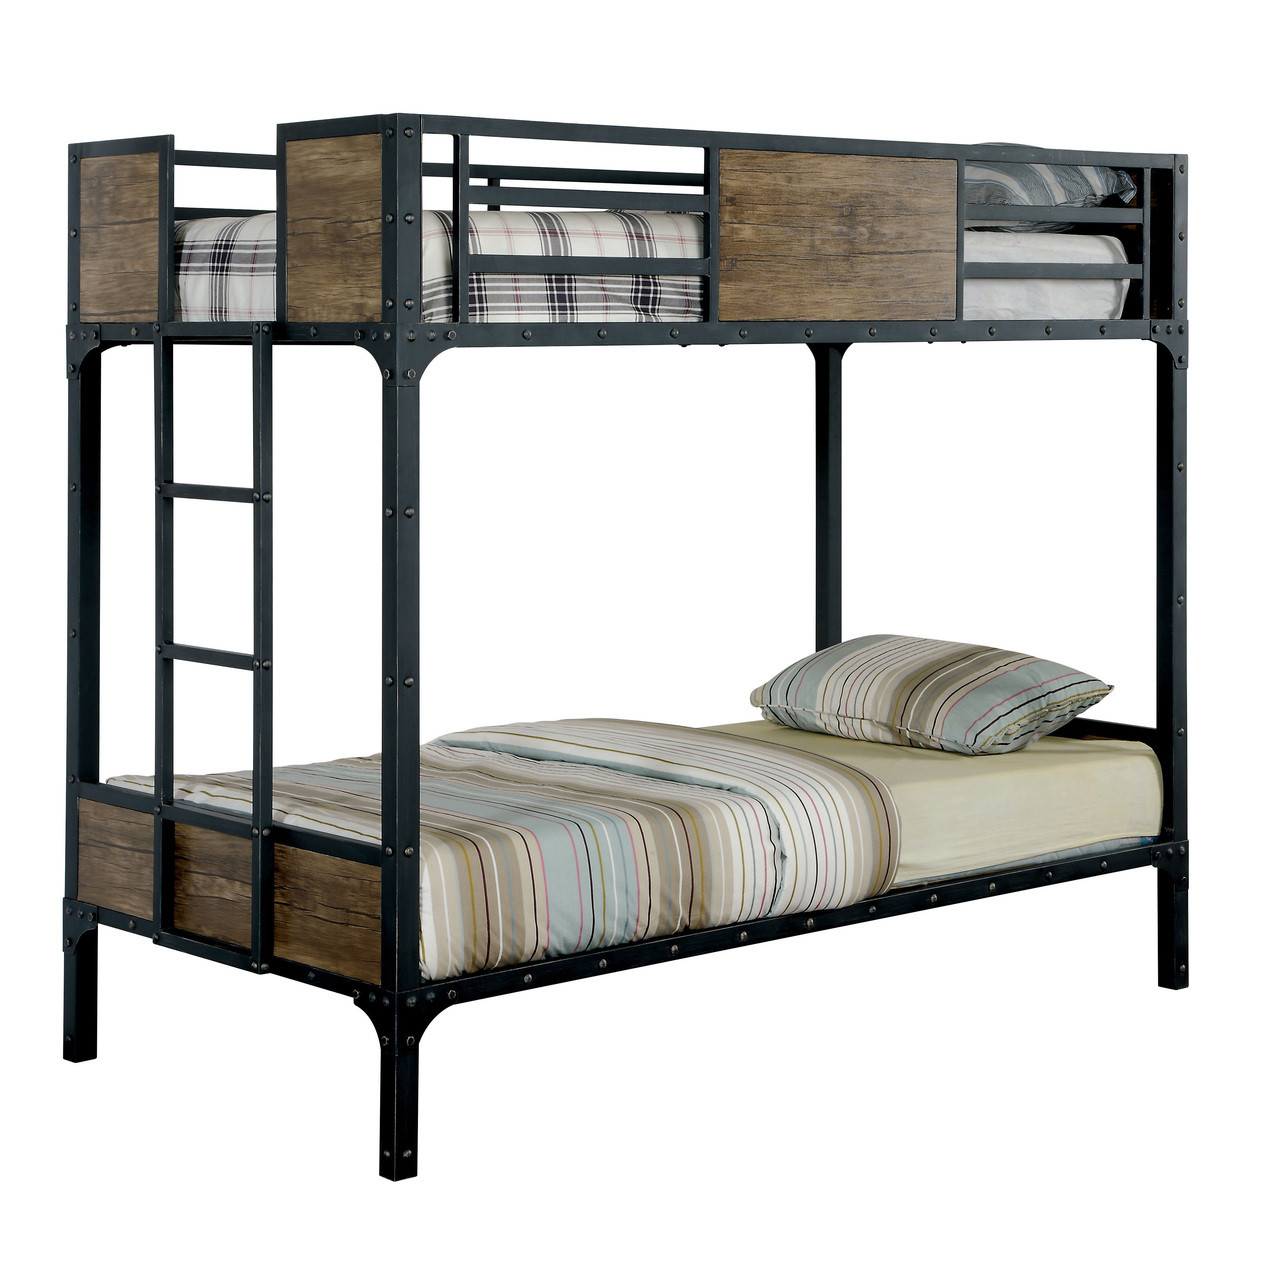 Furniture of america industrial metal wood twin bunk bed for Furniture of america